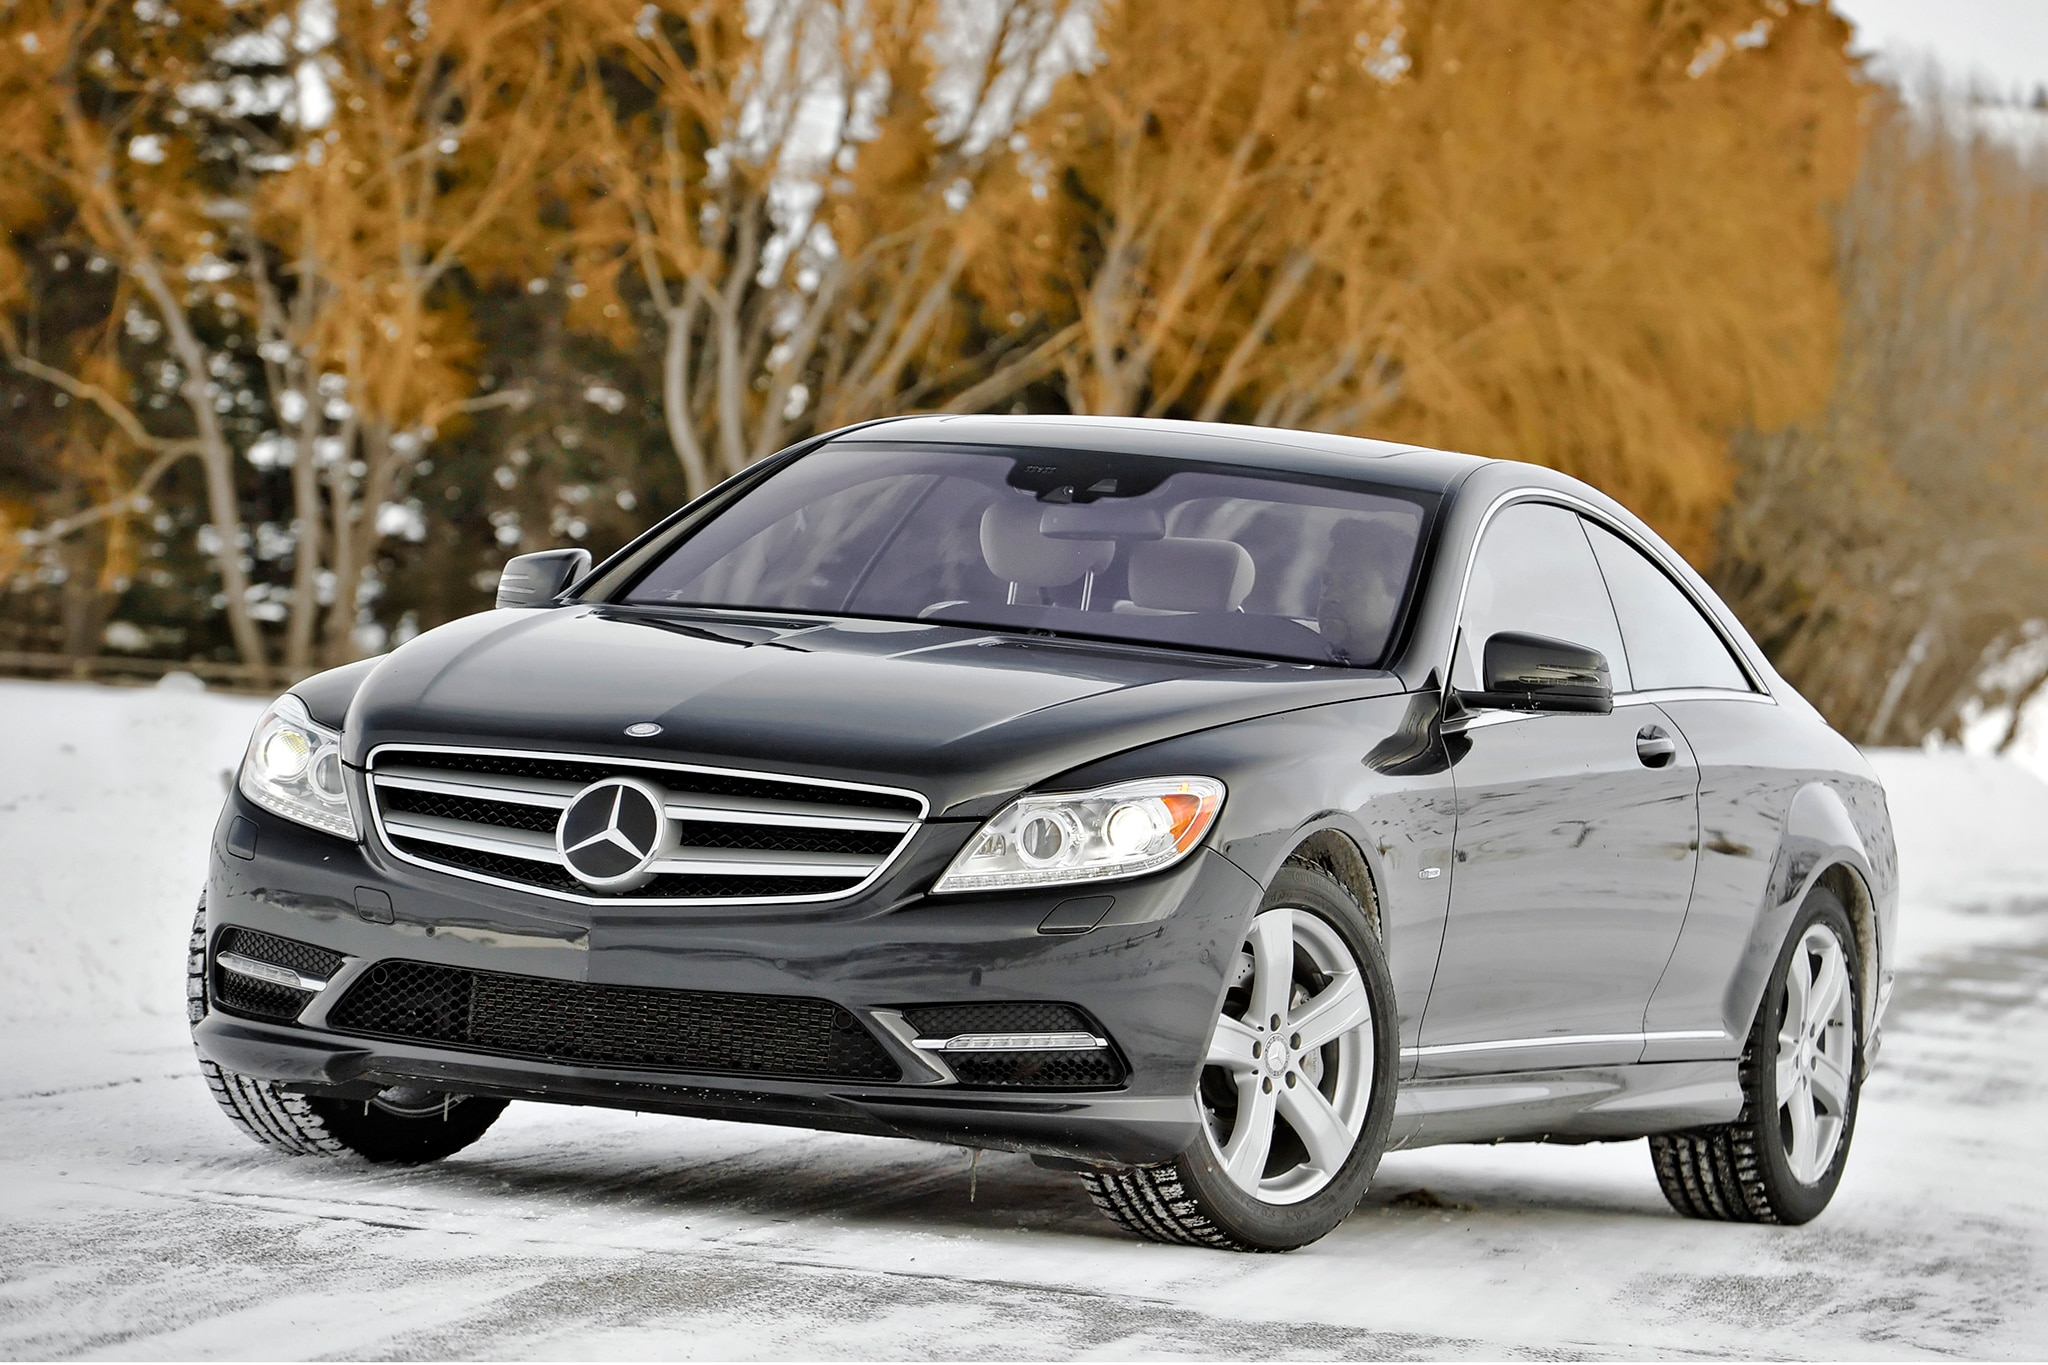 2008 Mercedes Benz Cl65 Amg Latest News Features And Auto Show Cl550 2013